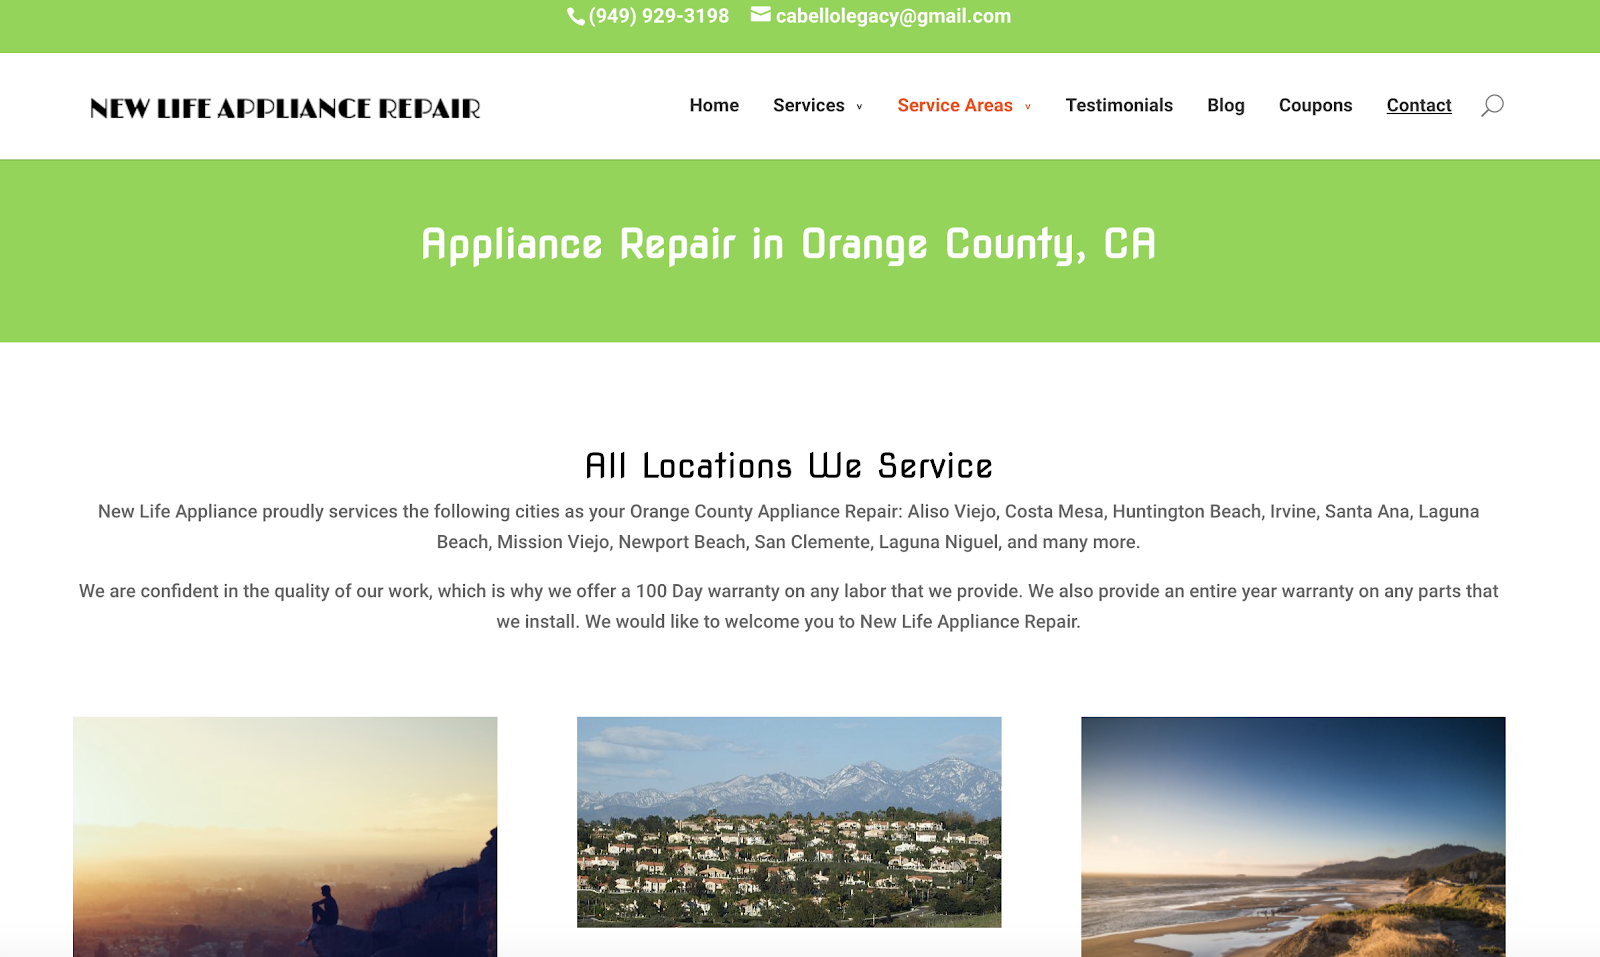 New Life Appliance Repair Location Page